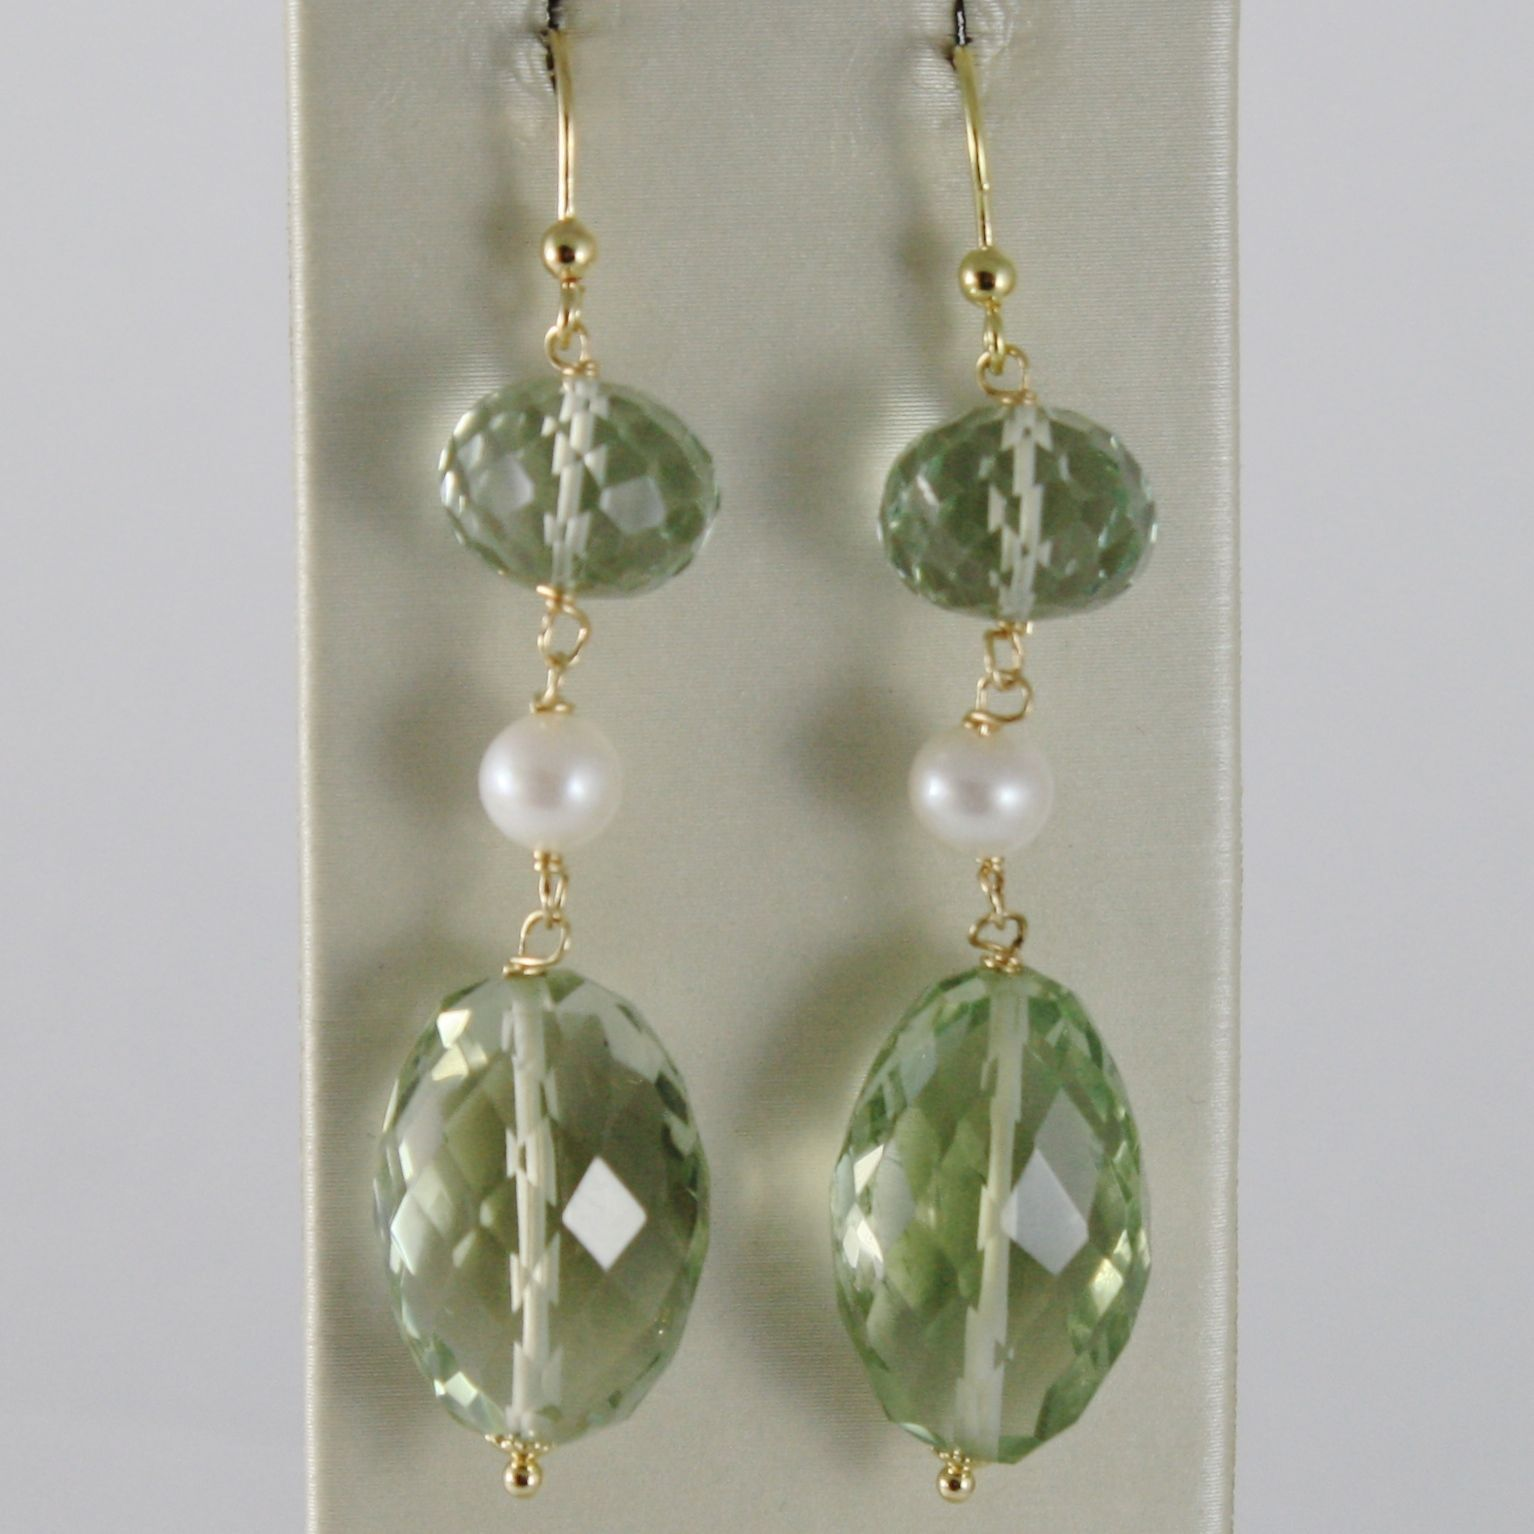 SOLID 18K YELLOW GOLD PENDANT EARRINGS WITH CUSHION GREEN PRASIOLITE AND PEARLS